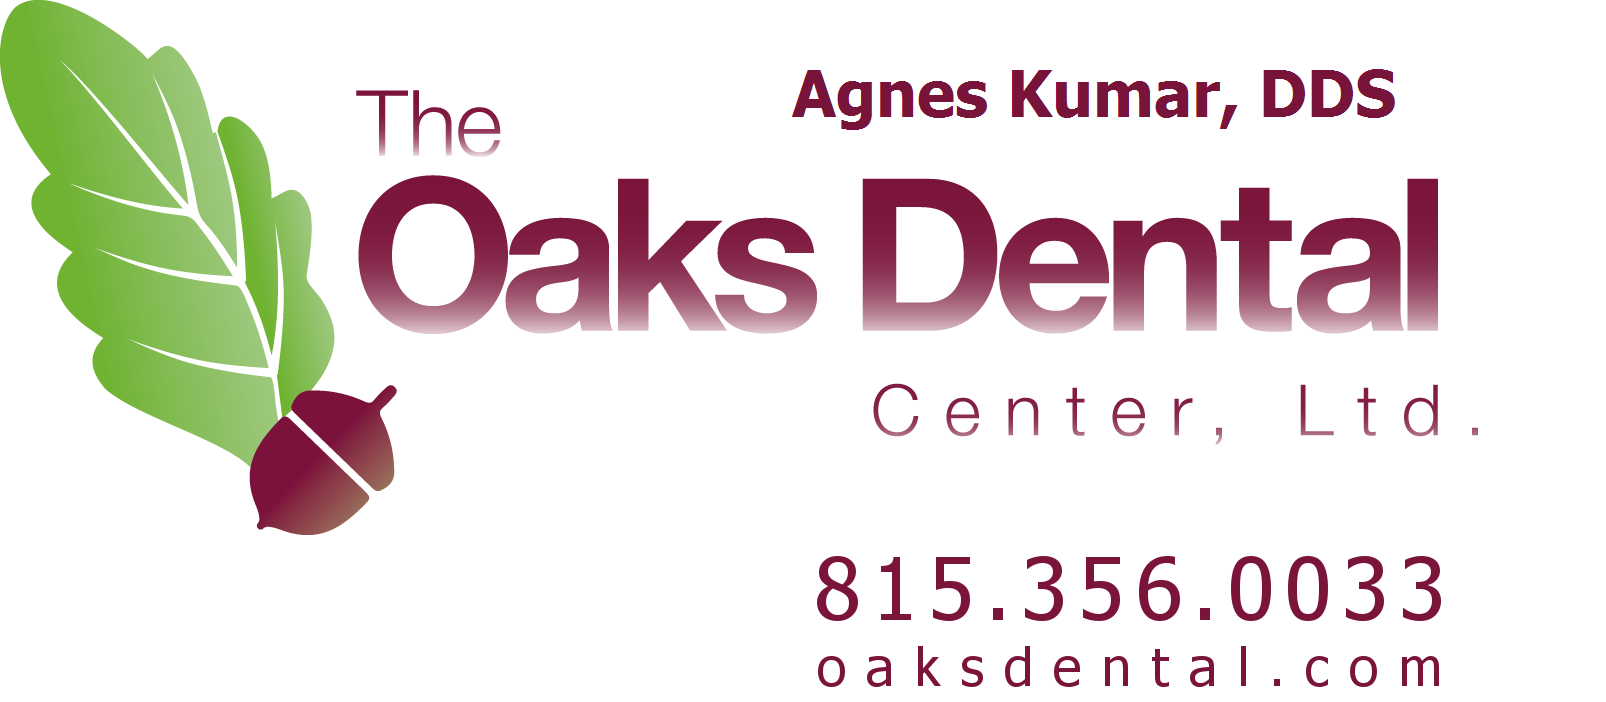 The Oaks Dental Center, Ltd. - Agnes Kumar, DDS